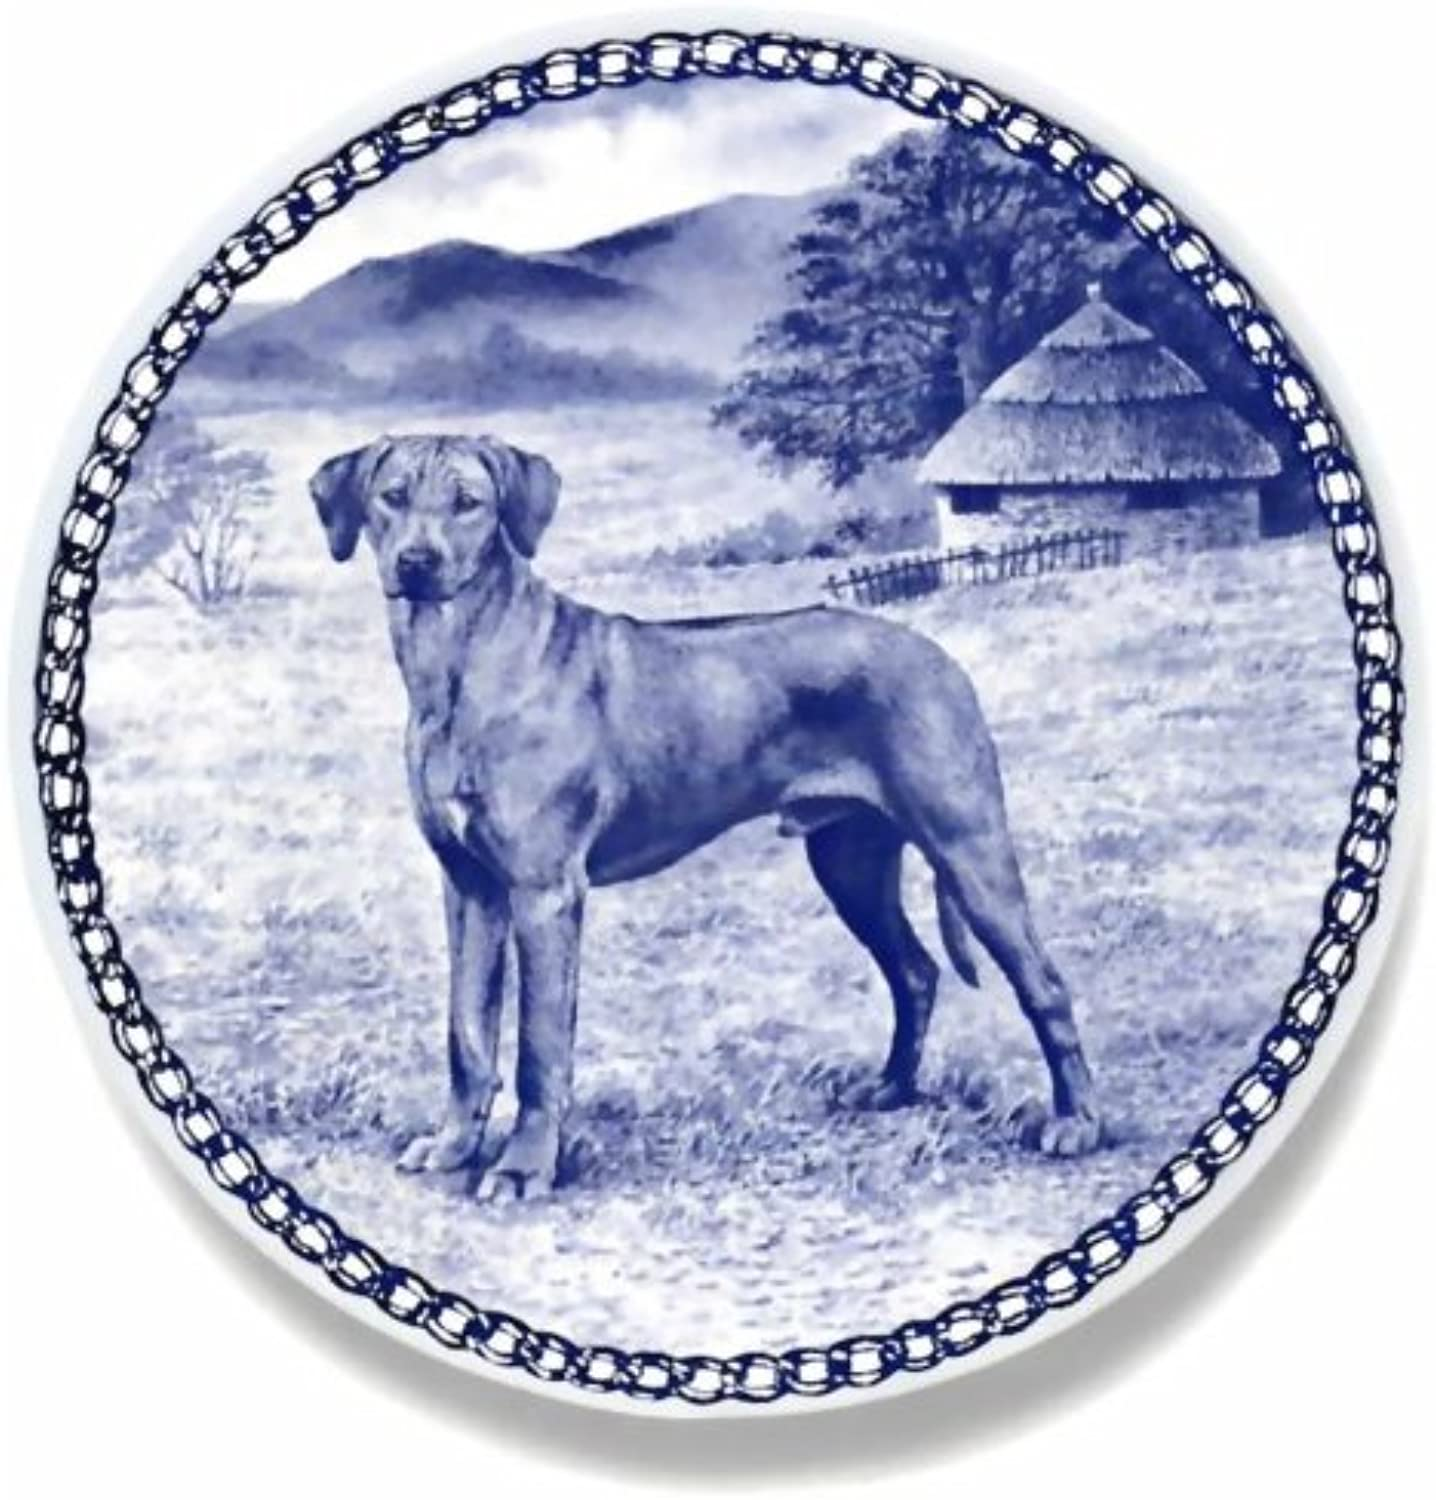 Rhodesian Ridgeback   Lekven Design Dog Plate 19.5 cm  7.61 inches Made in Denmark NEW with certificate of origin PLATE  7417